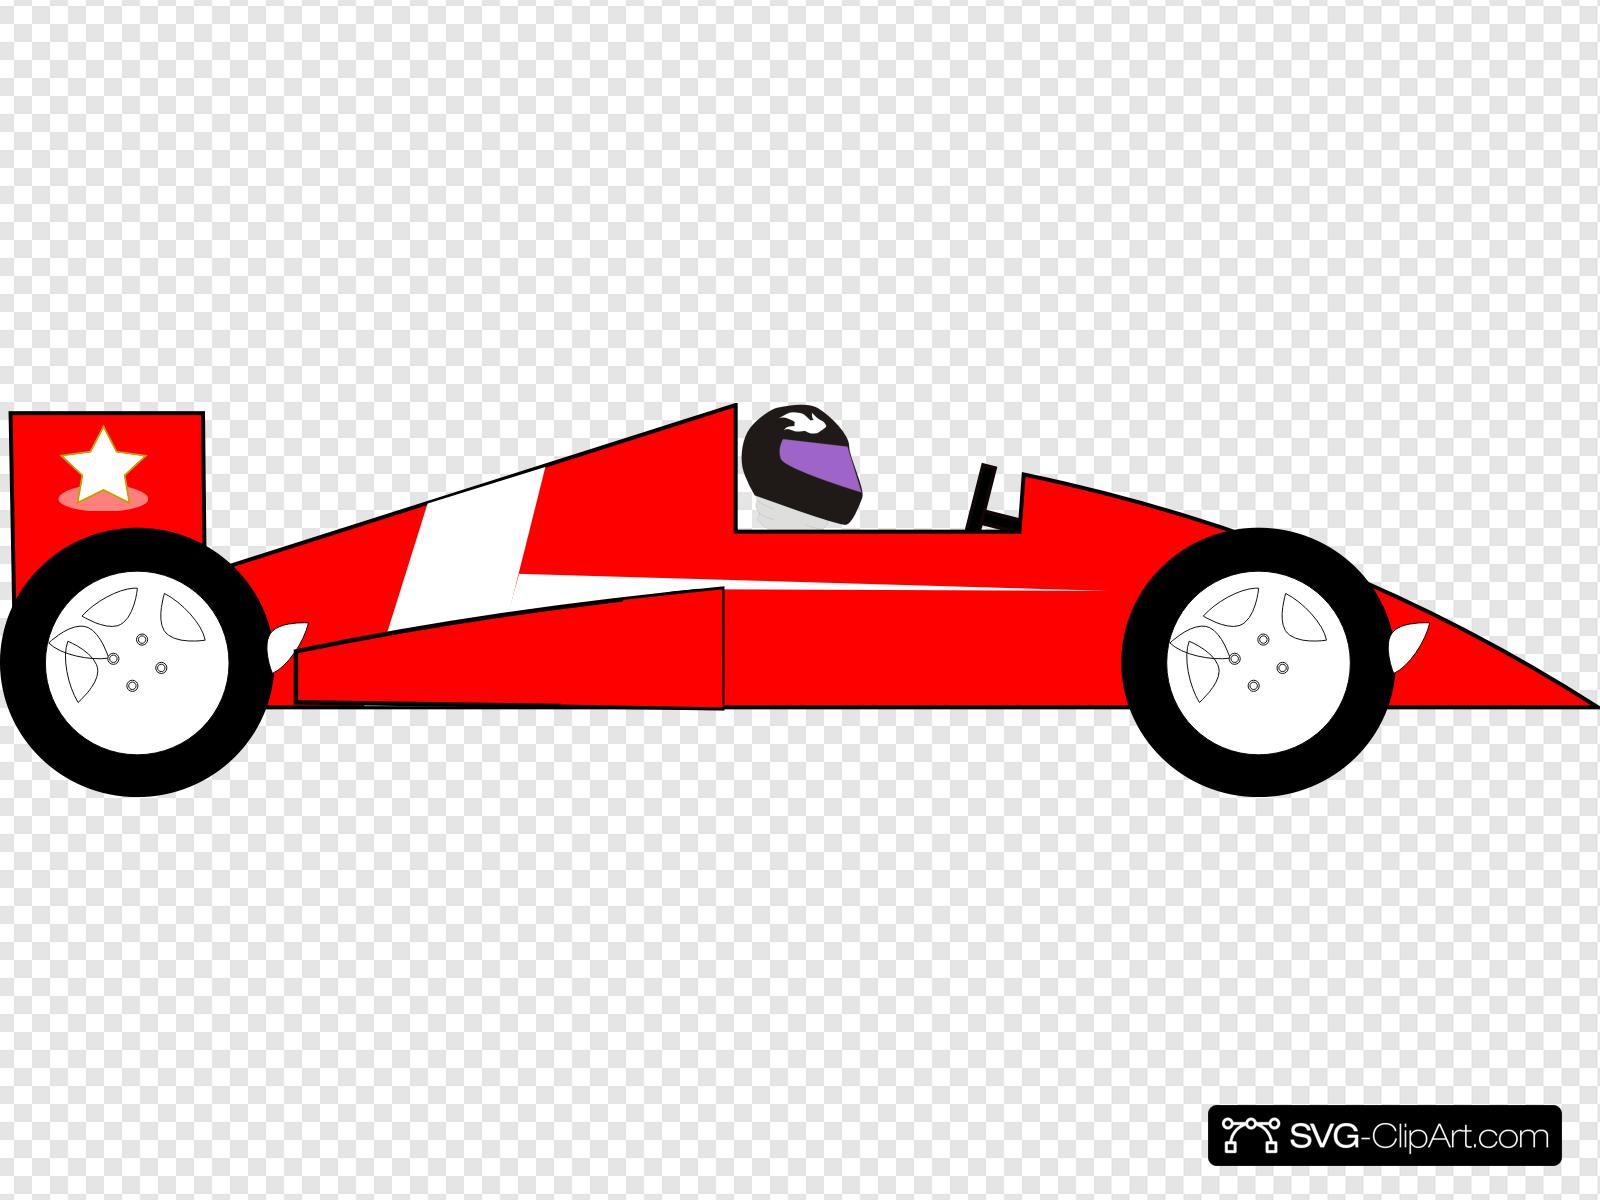 Red Racecar Clip art, Icon and SVG.